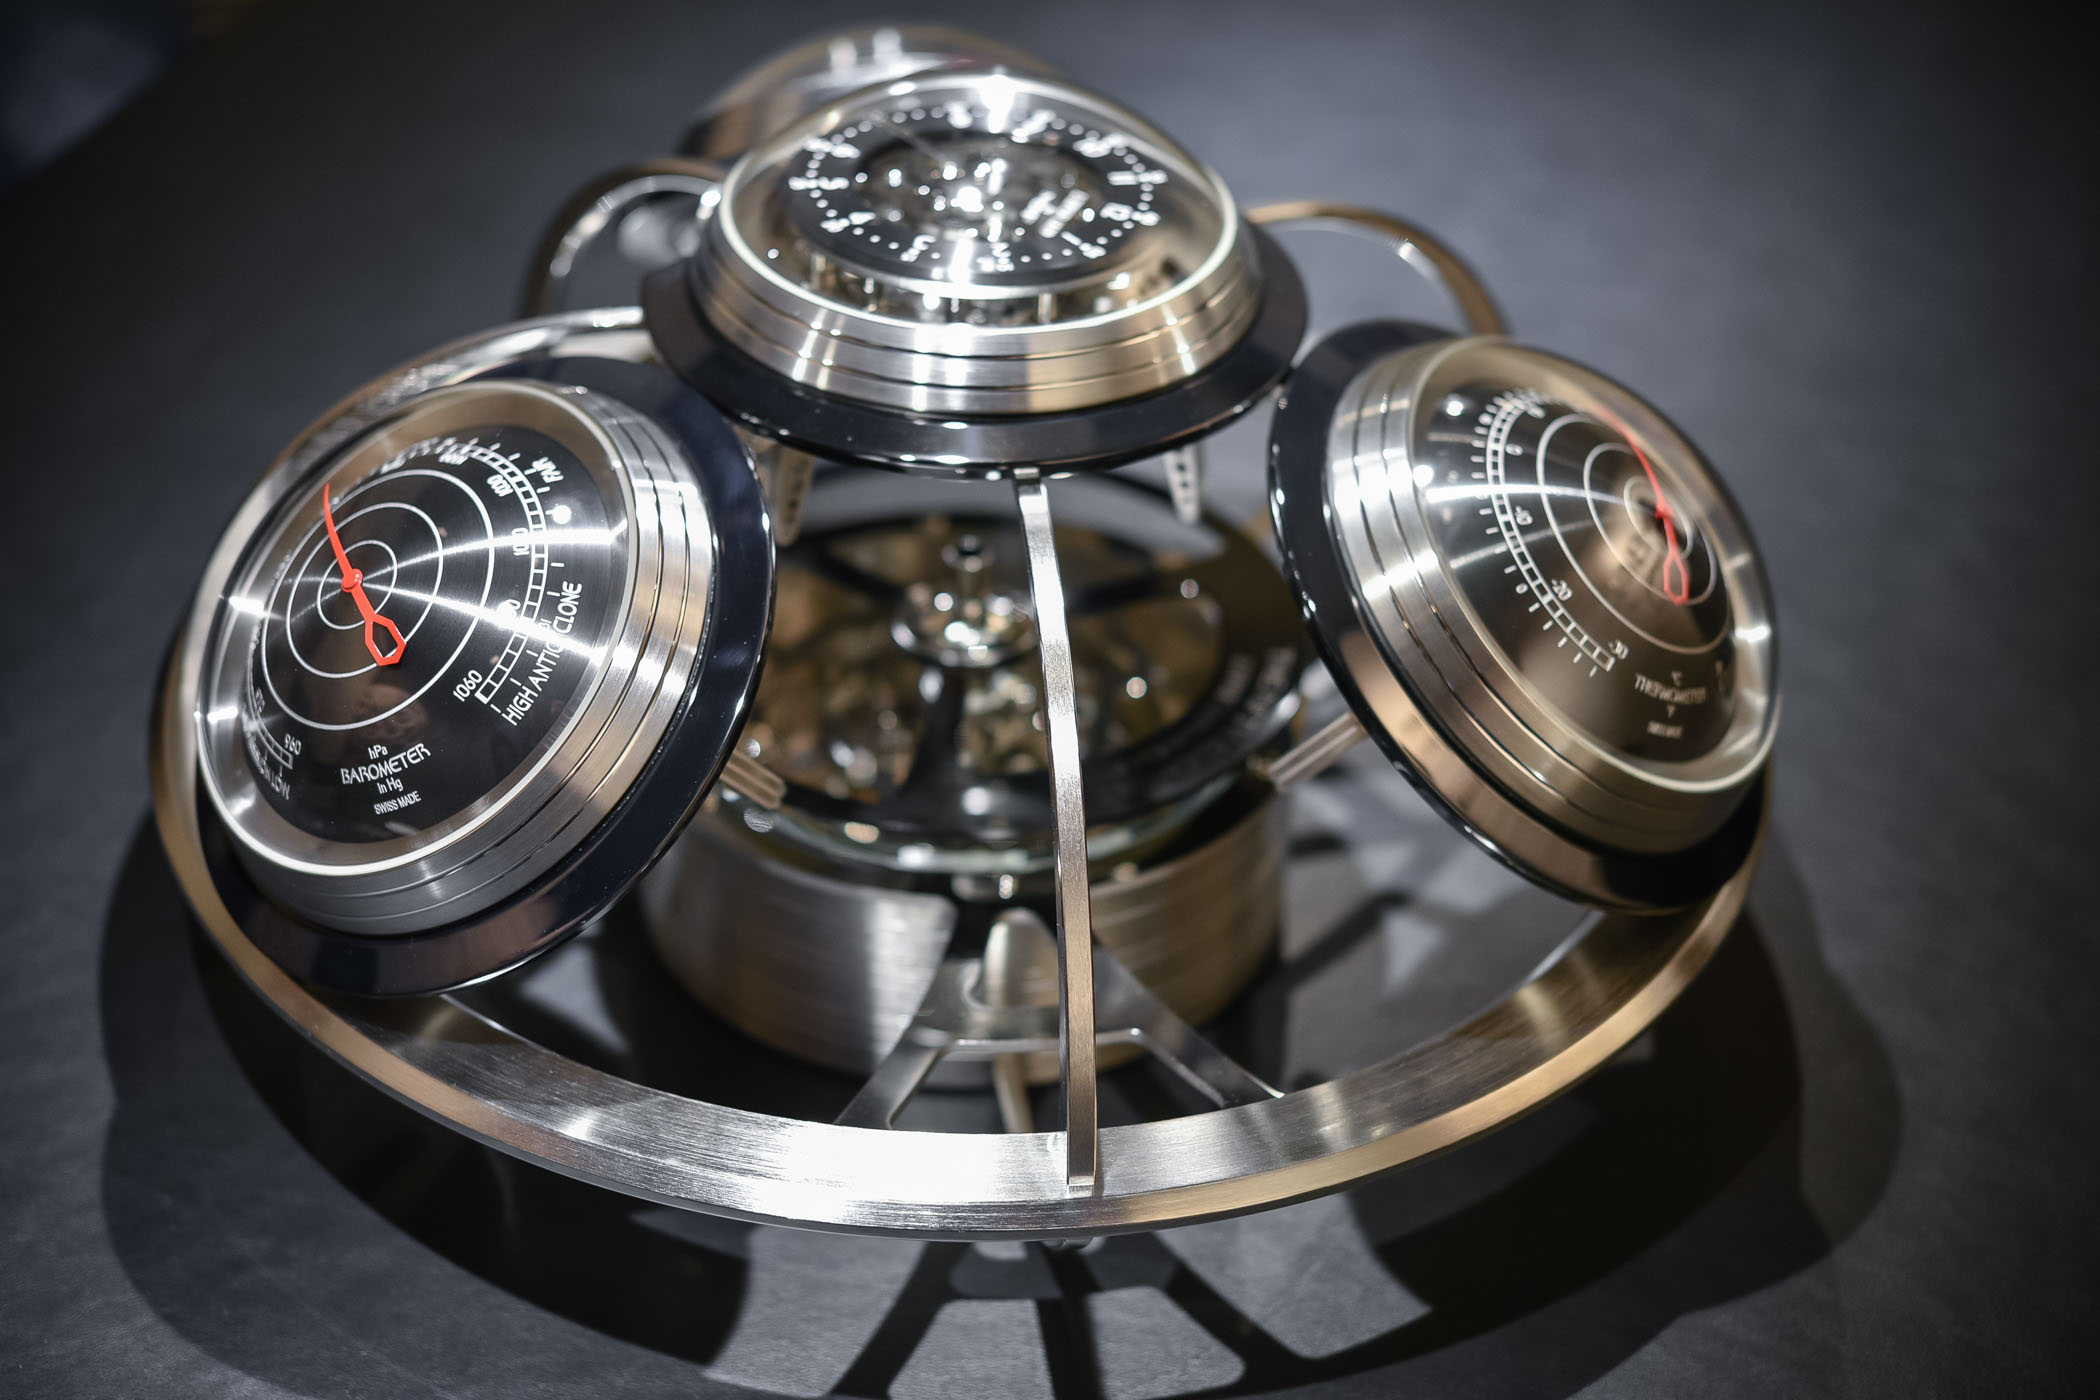 MBandF L'epee Fifth Element weather station - 3